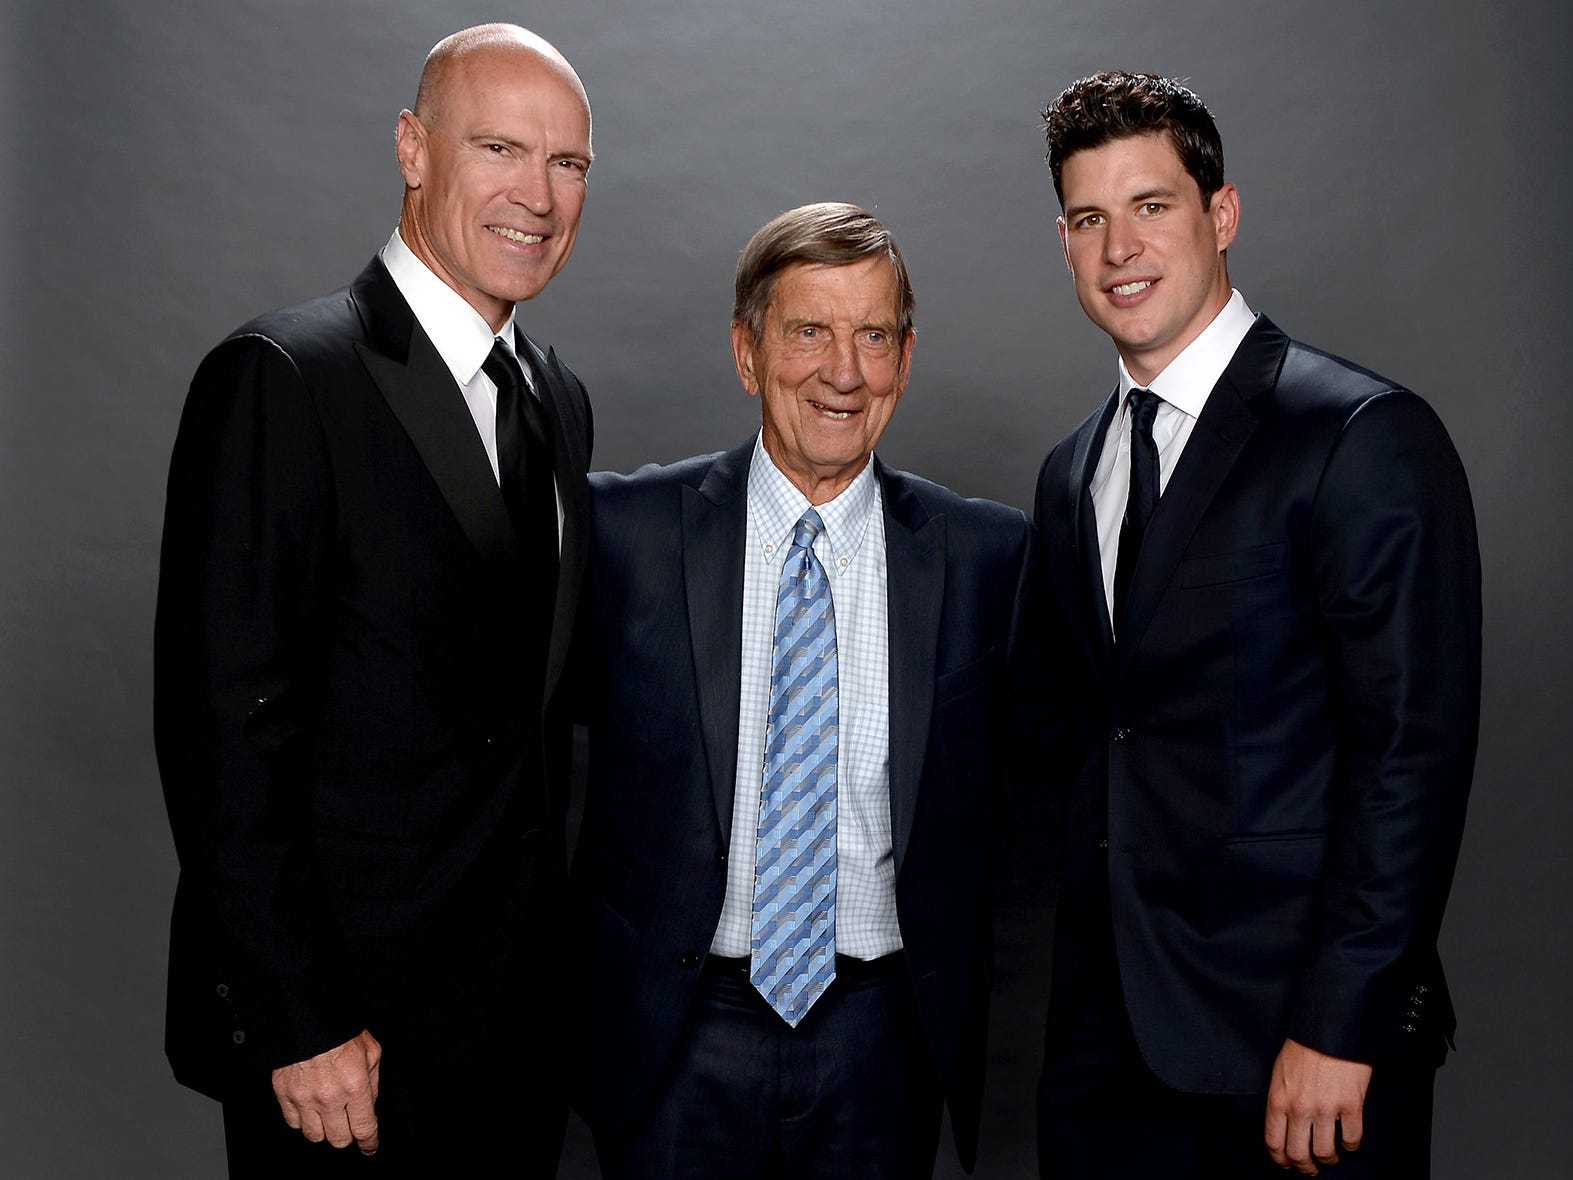 Former NHL Player Mark Messier, NHL Hall of Famer Ted Lindsay and Sidney Crosby of the Pittsburgh Penguins pose for a portrait during the 2014 NHL Awards at Encore Las Vegas on June 24, 2014 in Las Vegas.